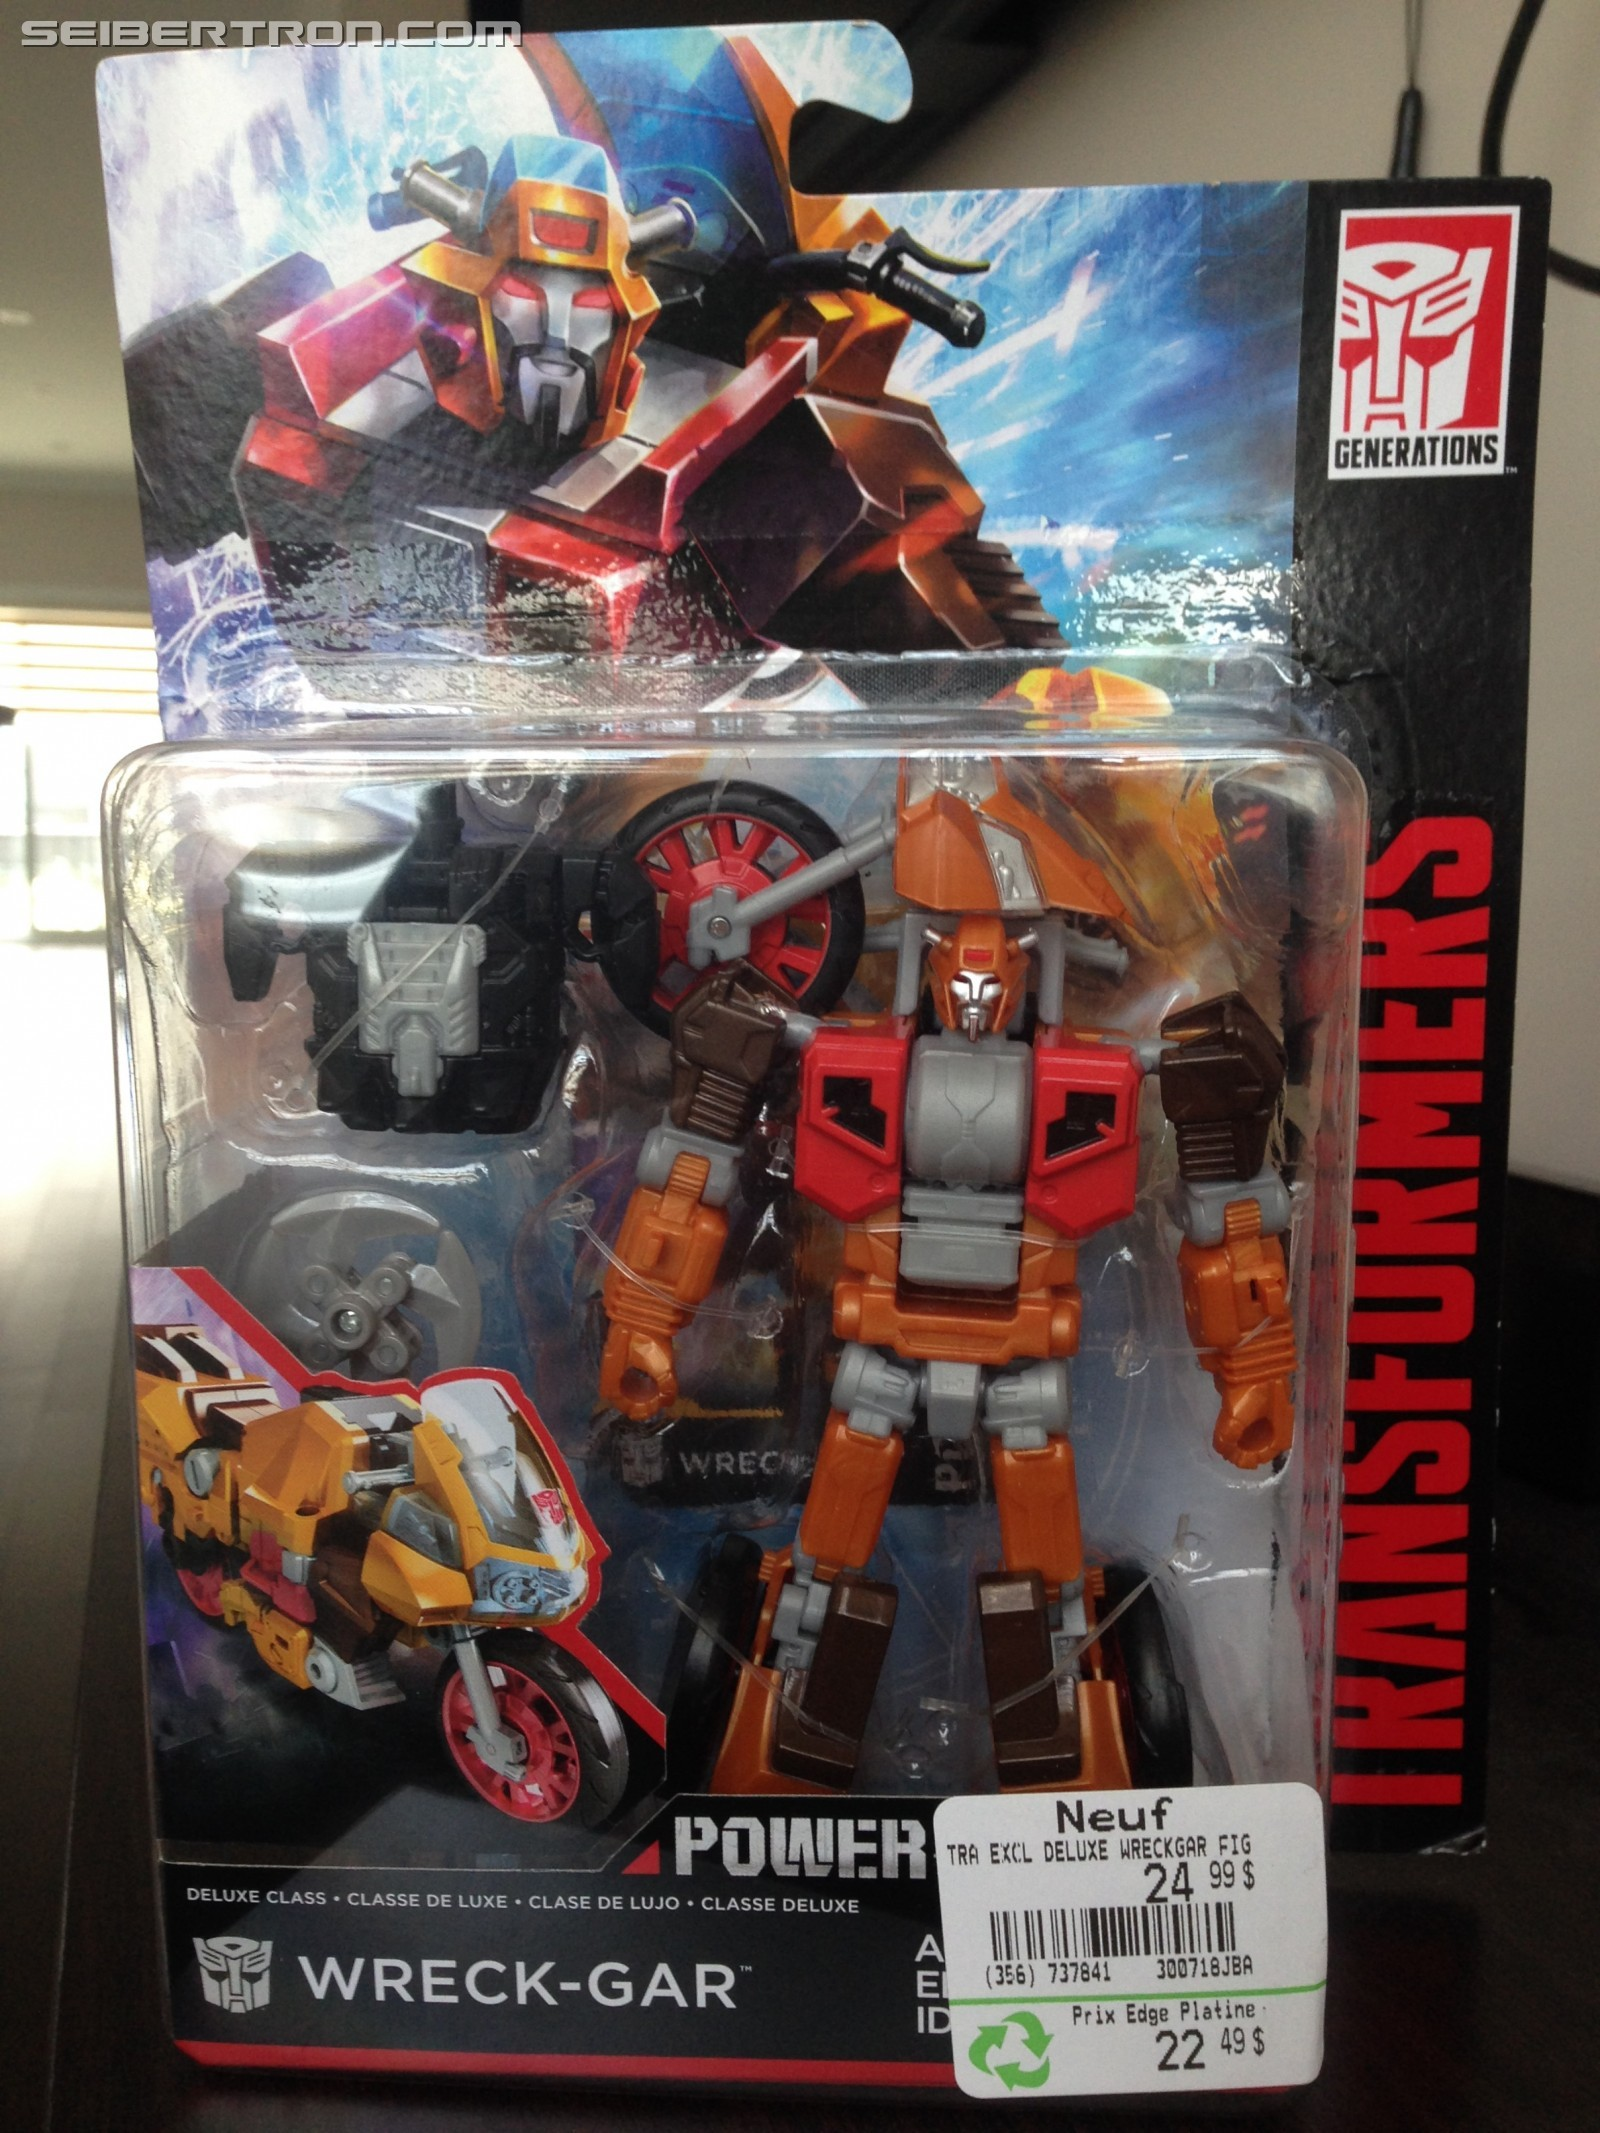 Transformers News: EB Games / Gamestop Becoming a Prominant Retailer for Hasbro Exclusives in North America